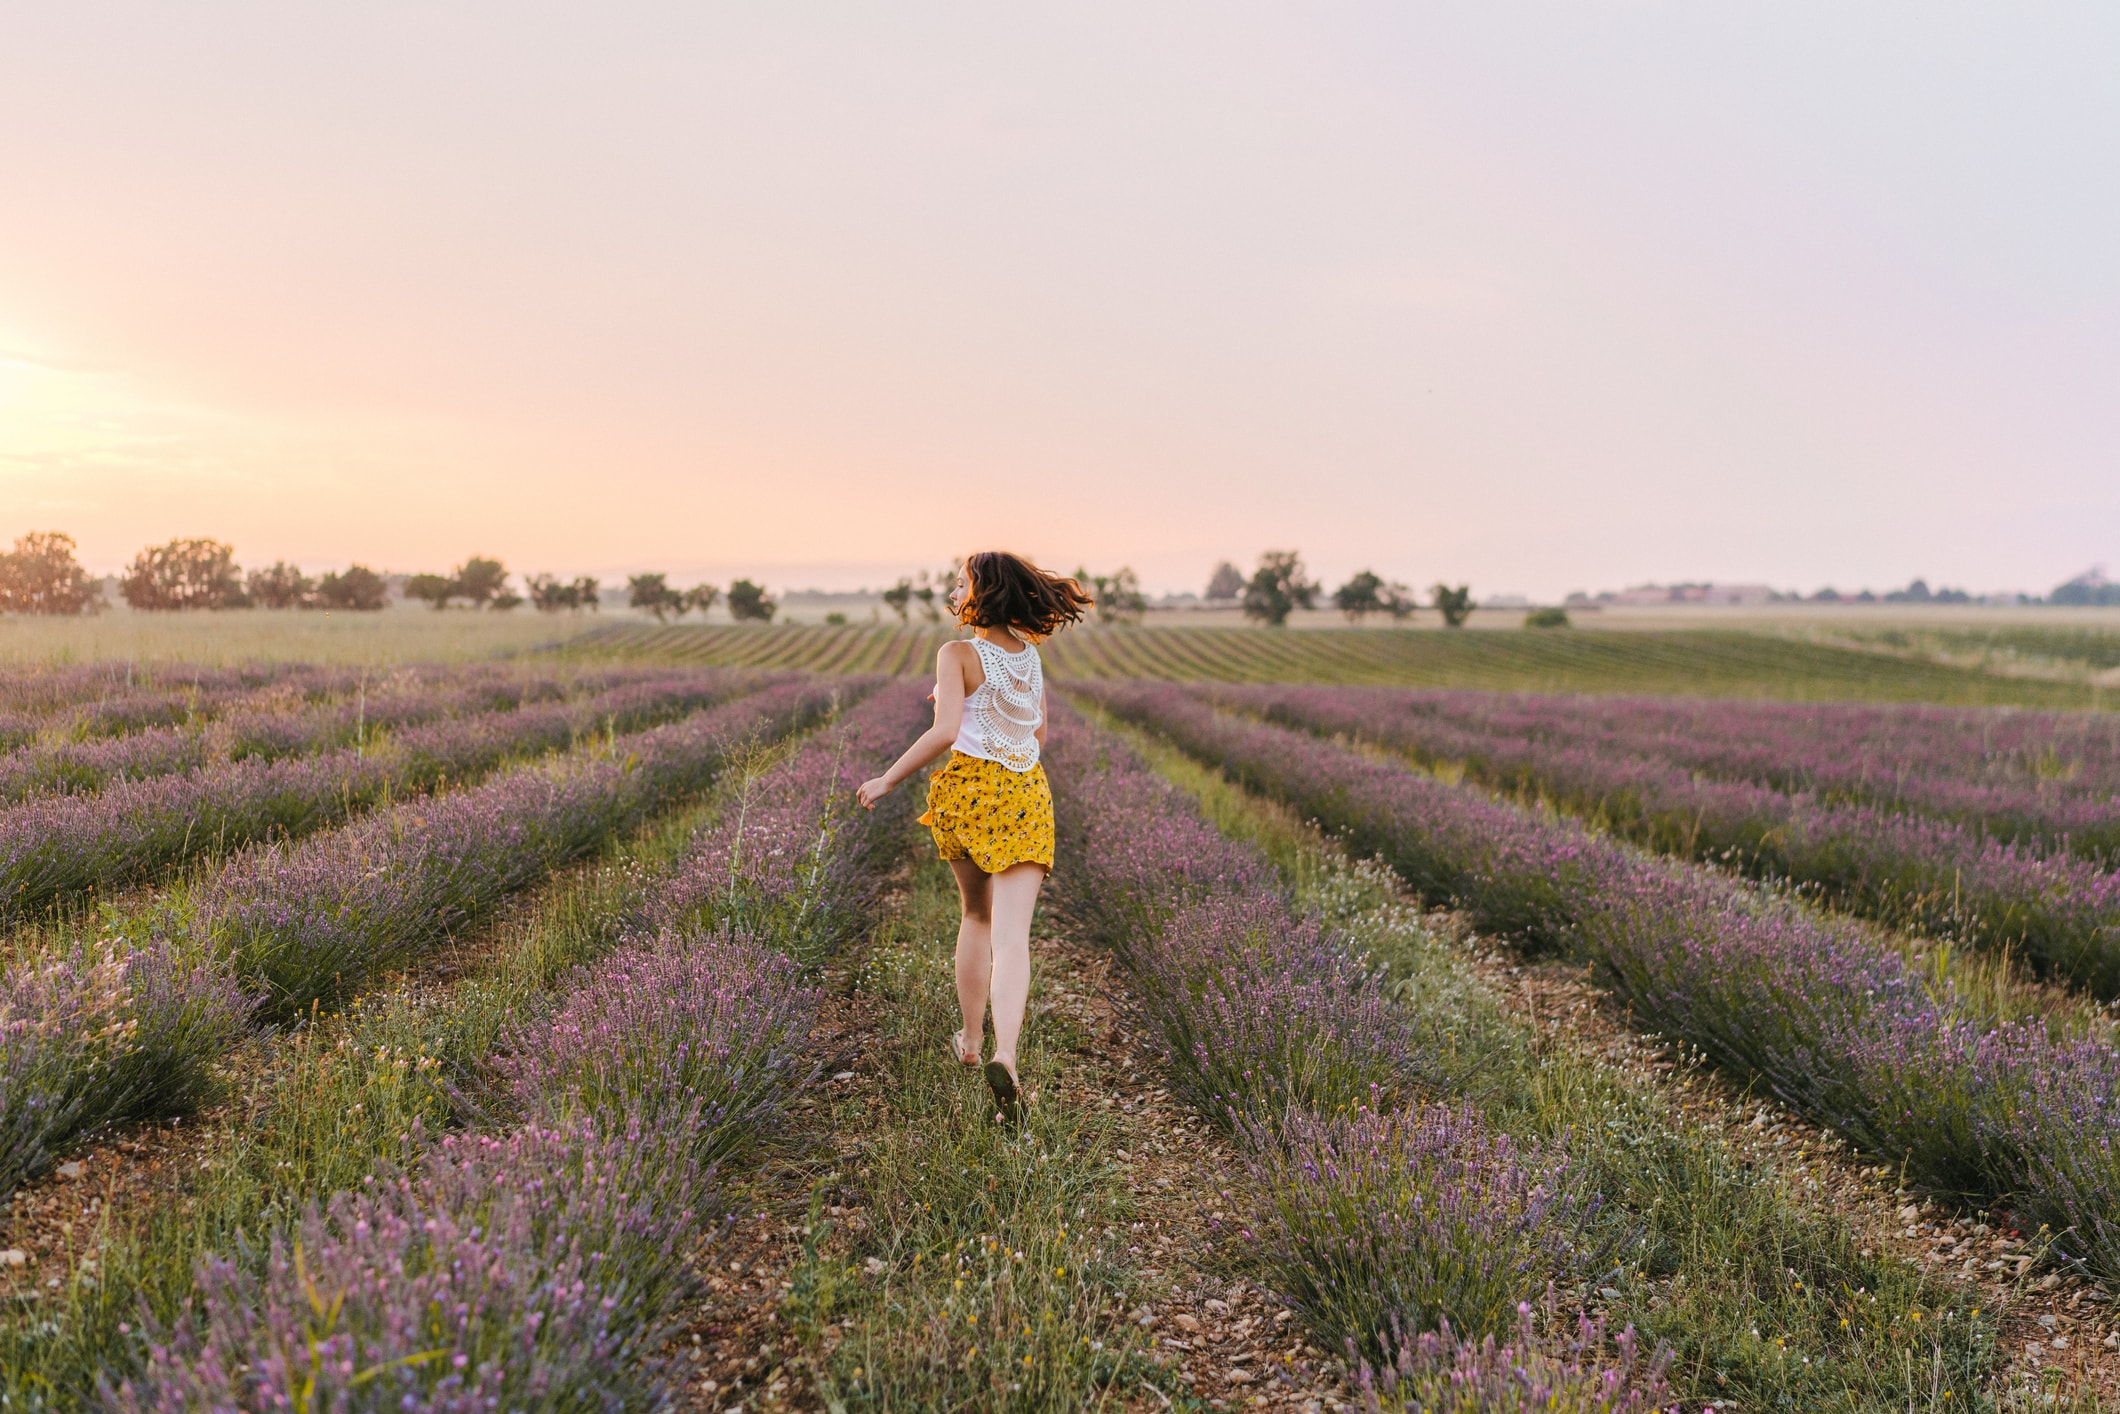 Image of a girl running through a field of purple flowers